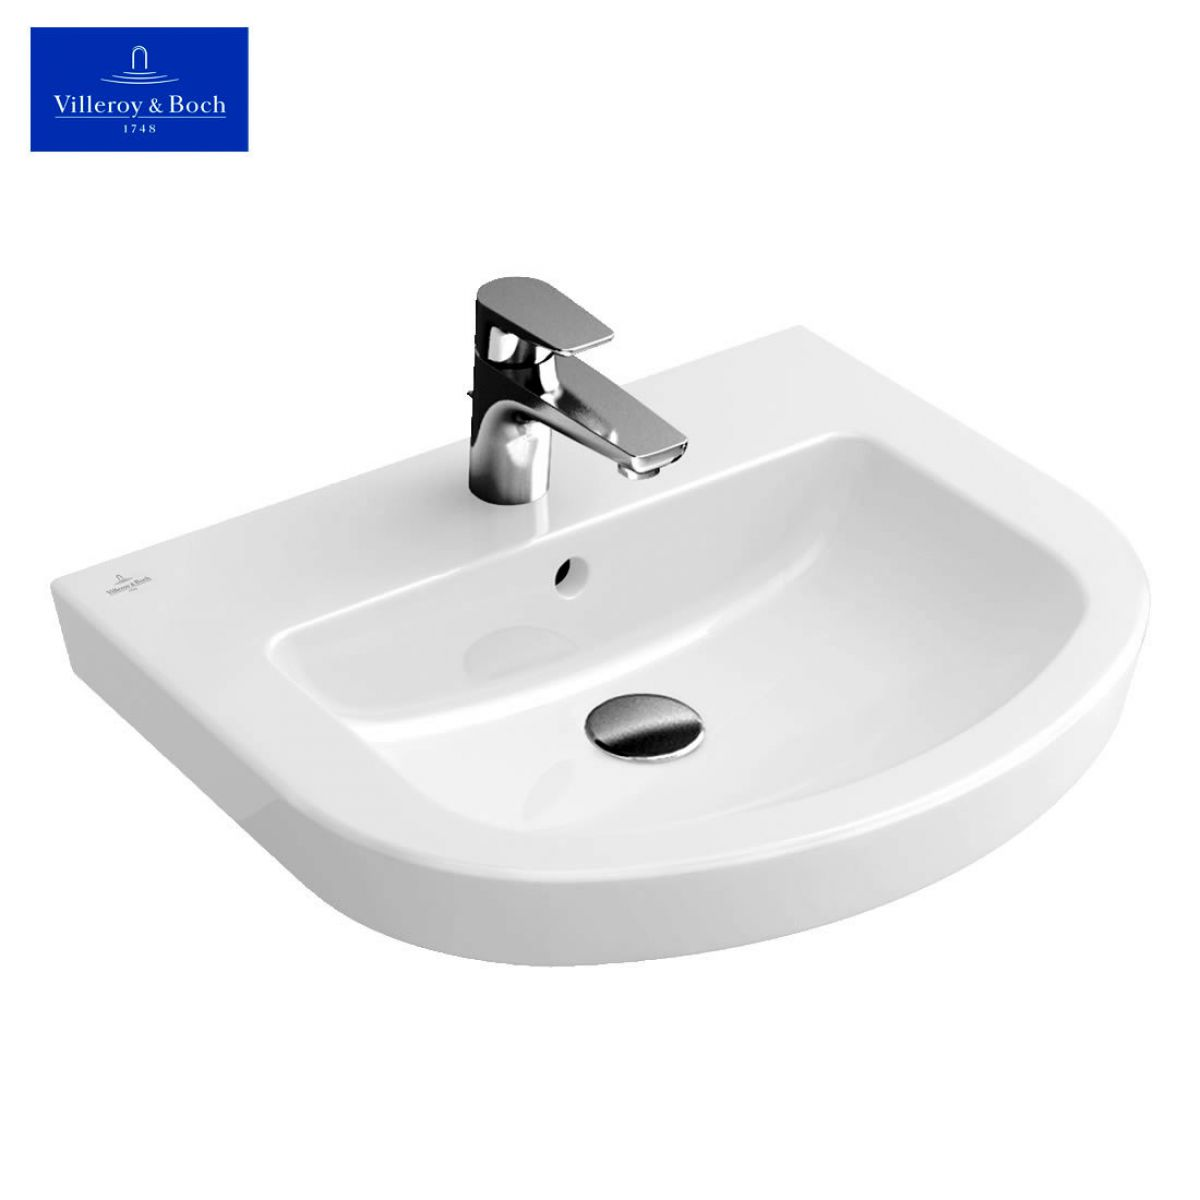 villeroy boch subway 2 0 curved washbasin for vanity units uk bathrooms. Black Bedroom Furniture Sets. Home Design Ideas